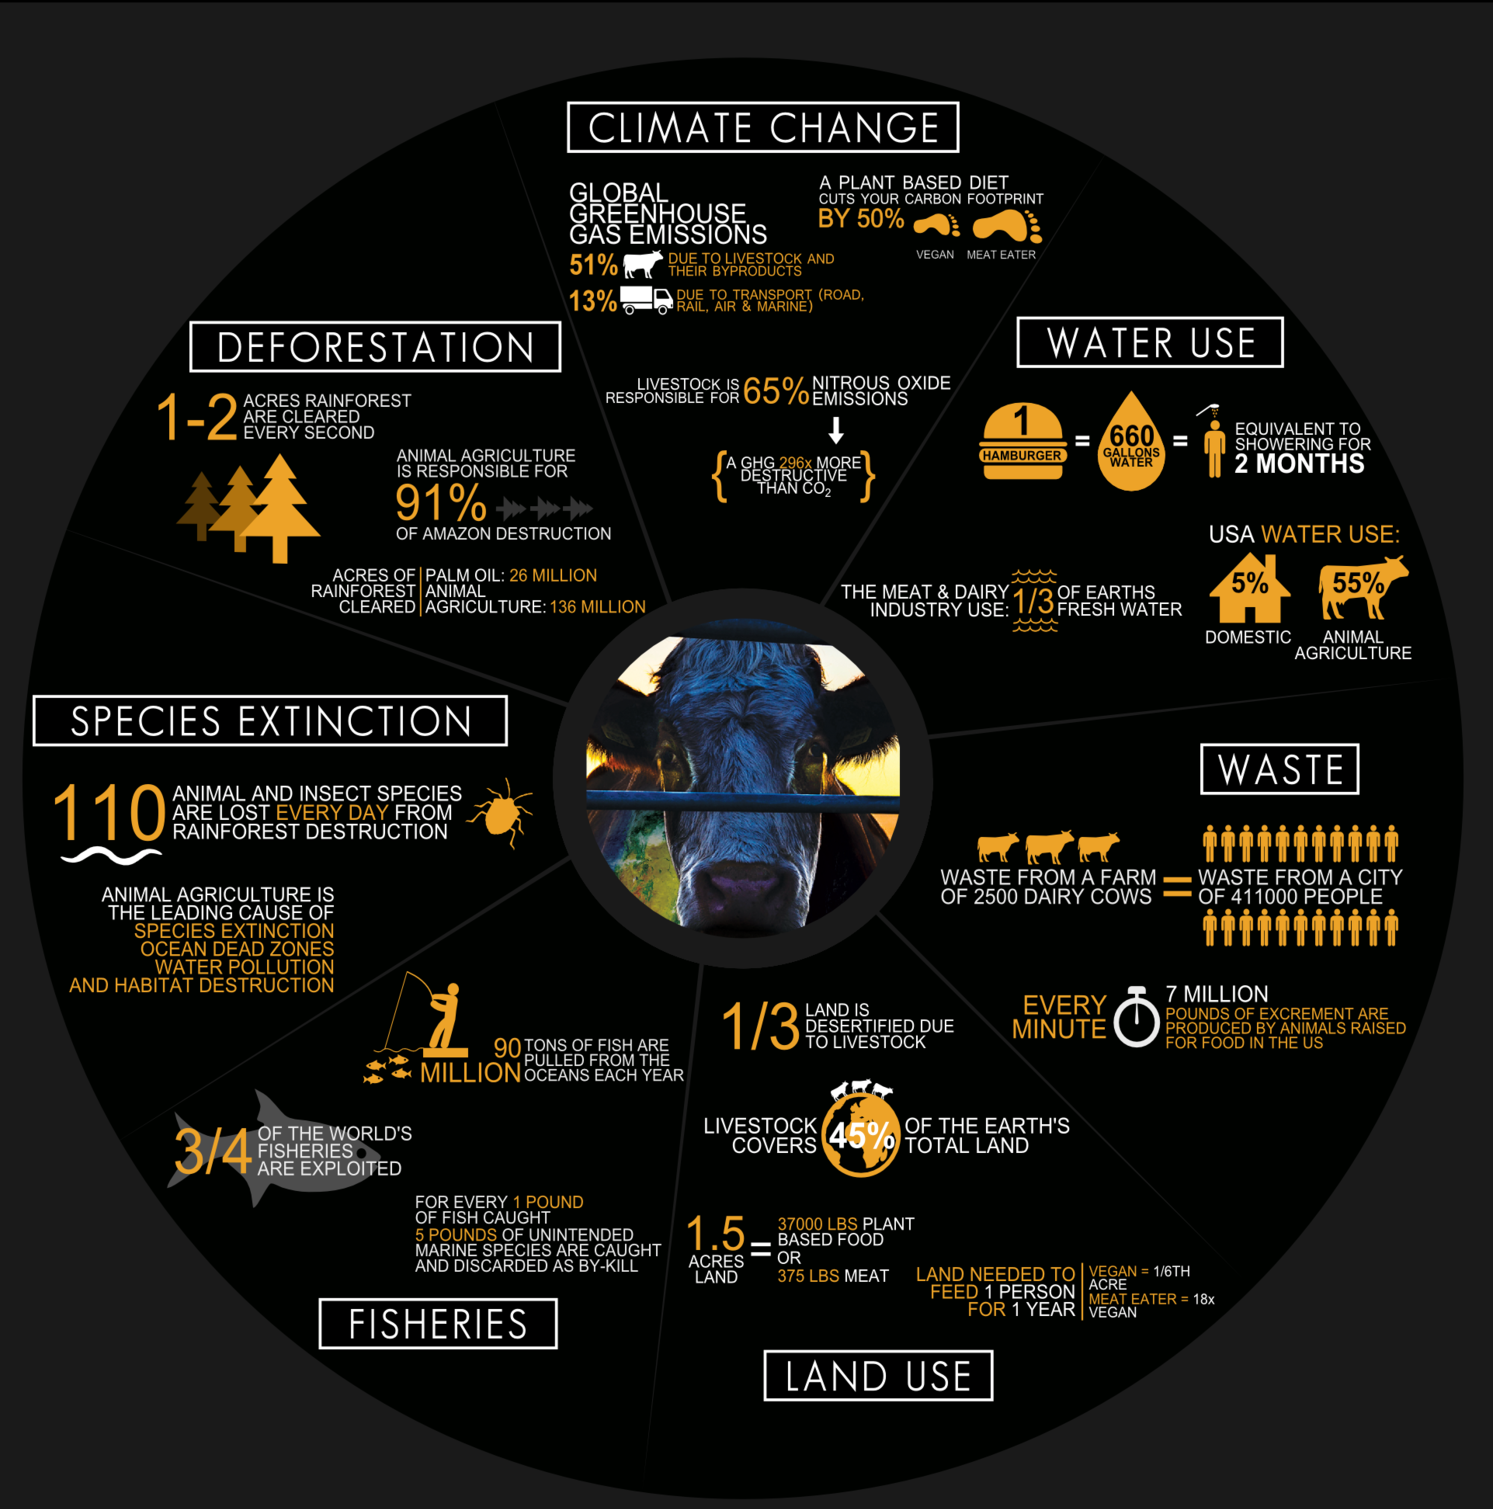 PICTURED:  The Cowspiracy infographic, still touting false information even though their own sources have drastically changed their estimates.